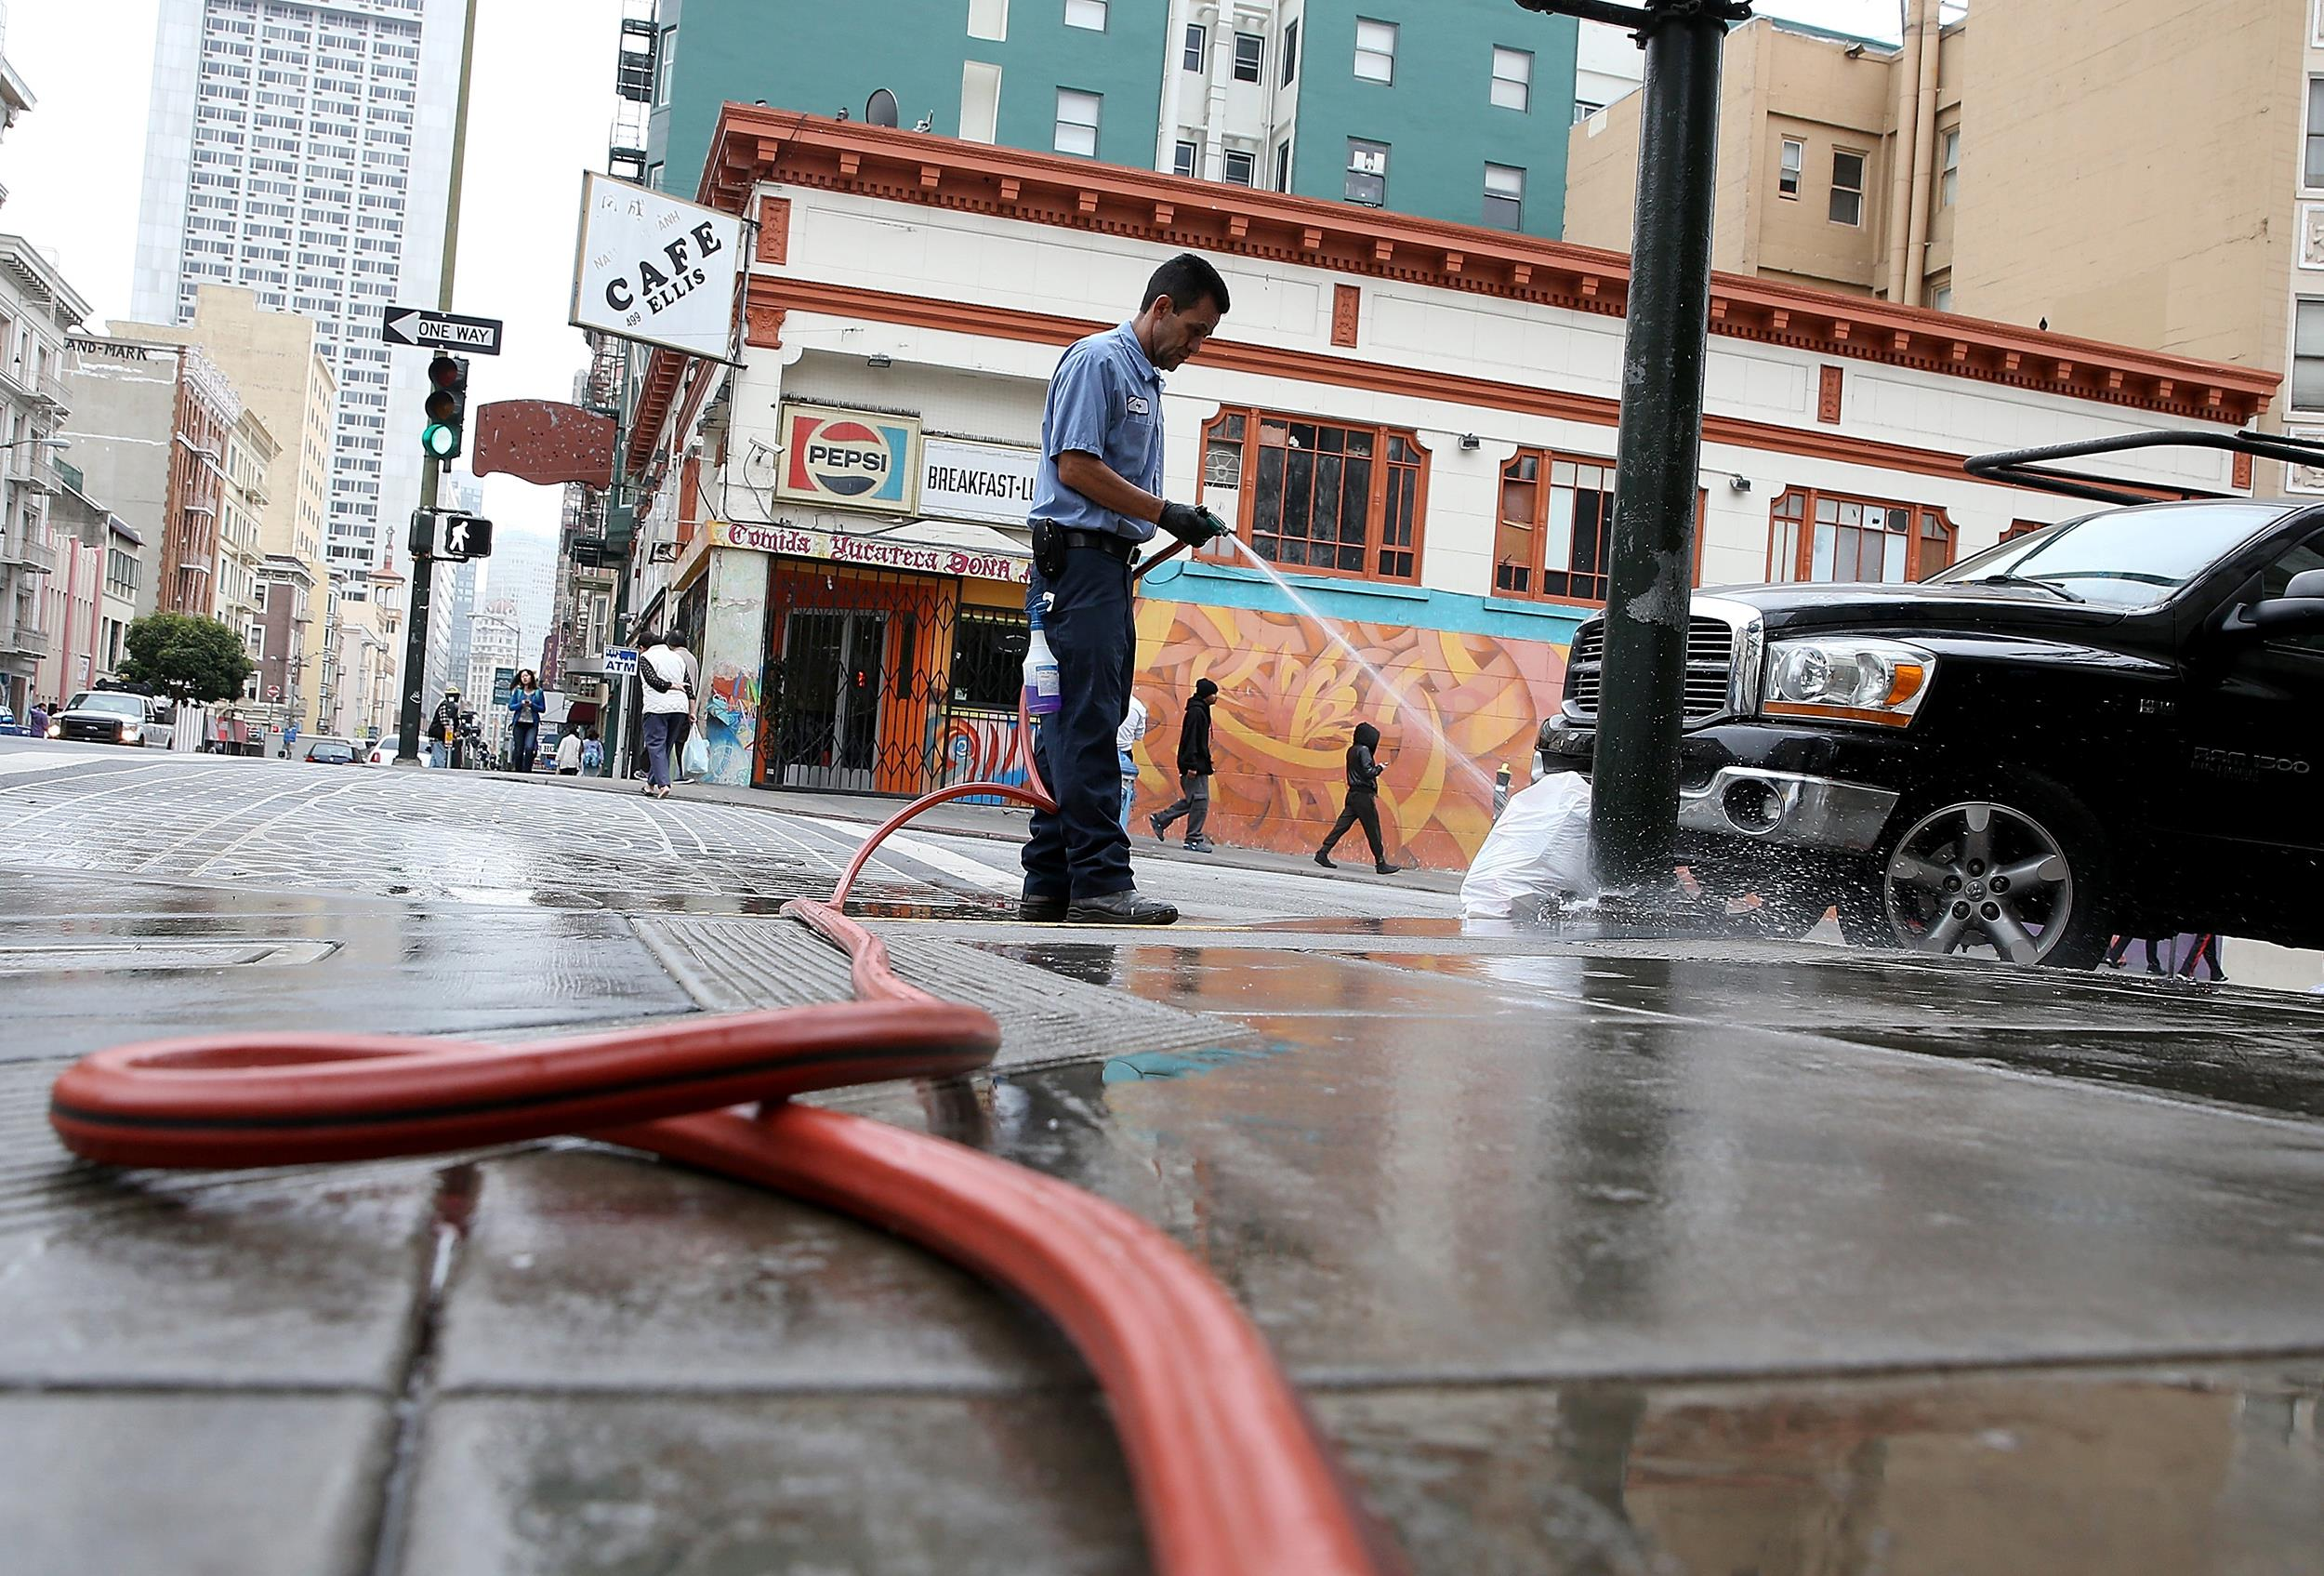 Image: A worker uses a hose to wash the sidewalk in front of a residential hotel on July 15 in San Francisco, Calif.